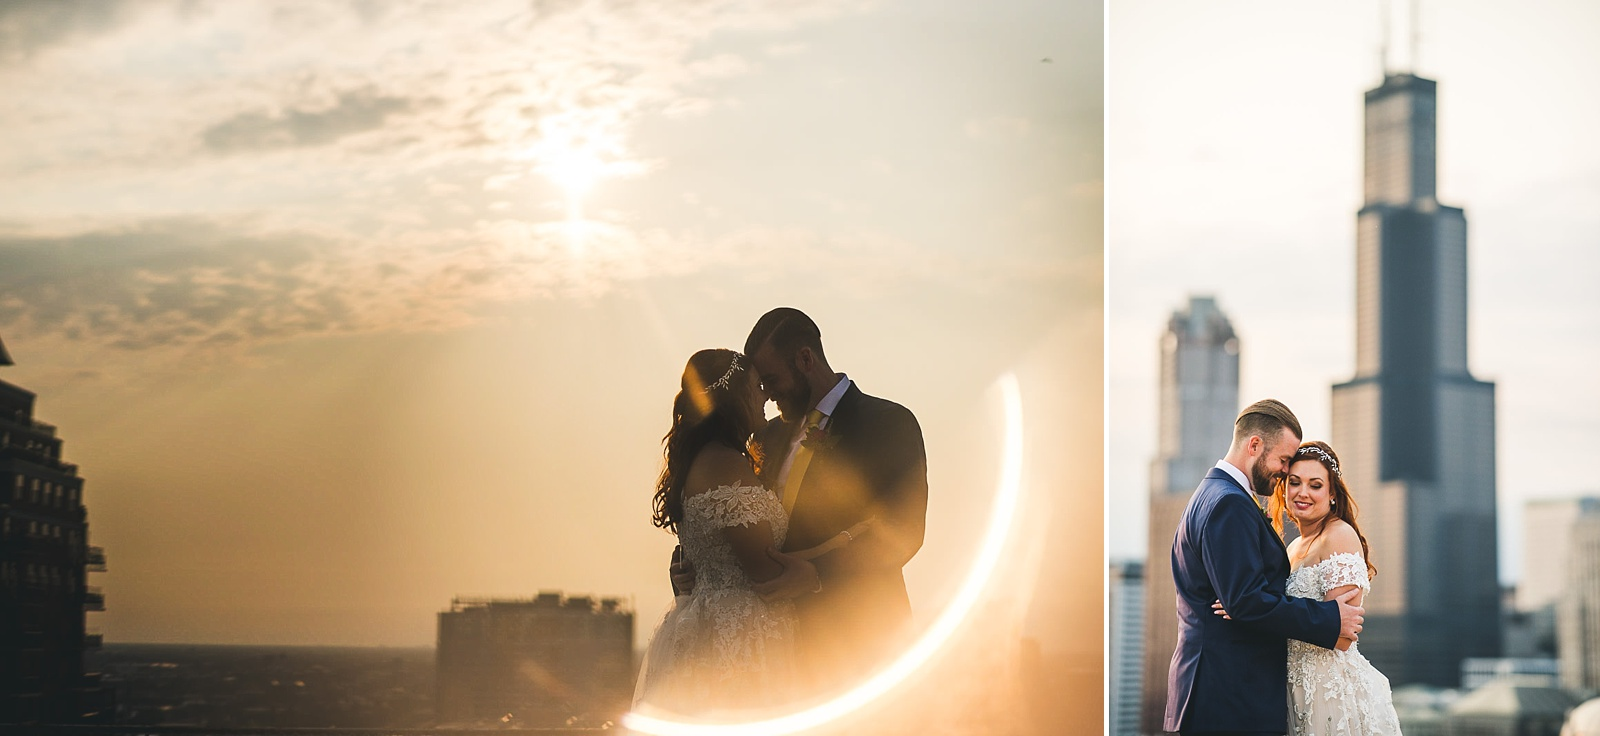 52 wedding photos on top of hilton helipad - Hilton Chicago Wedding Photographer // Sarah + Aaron